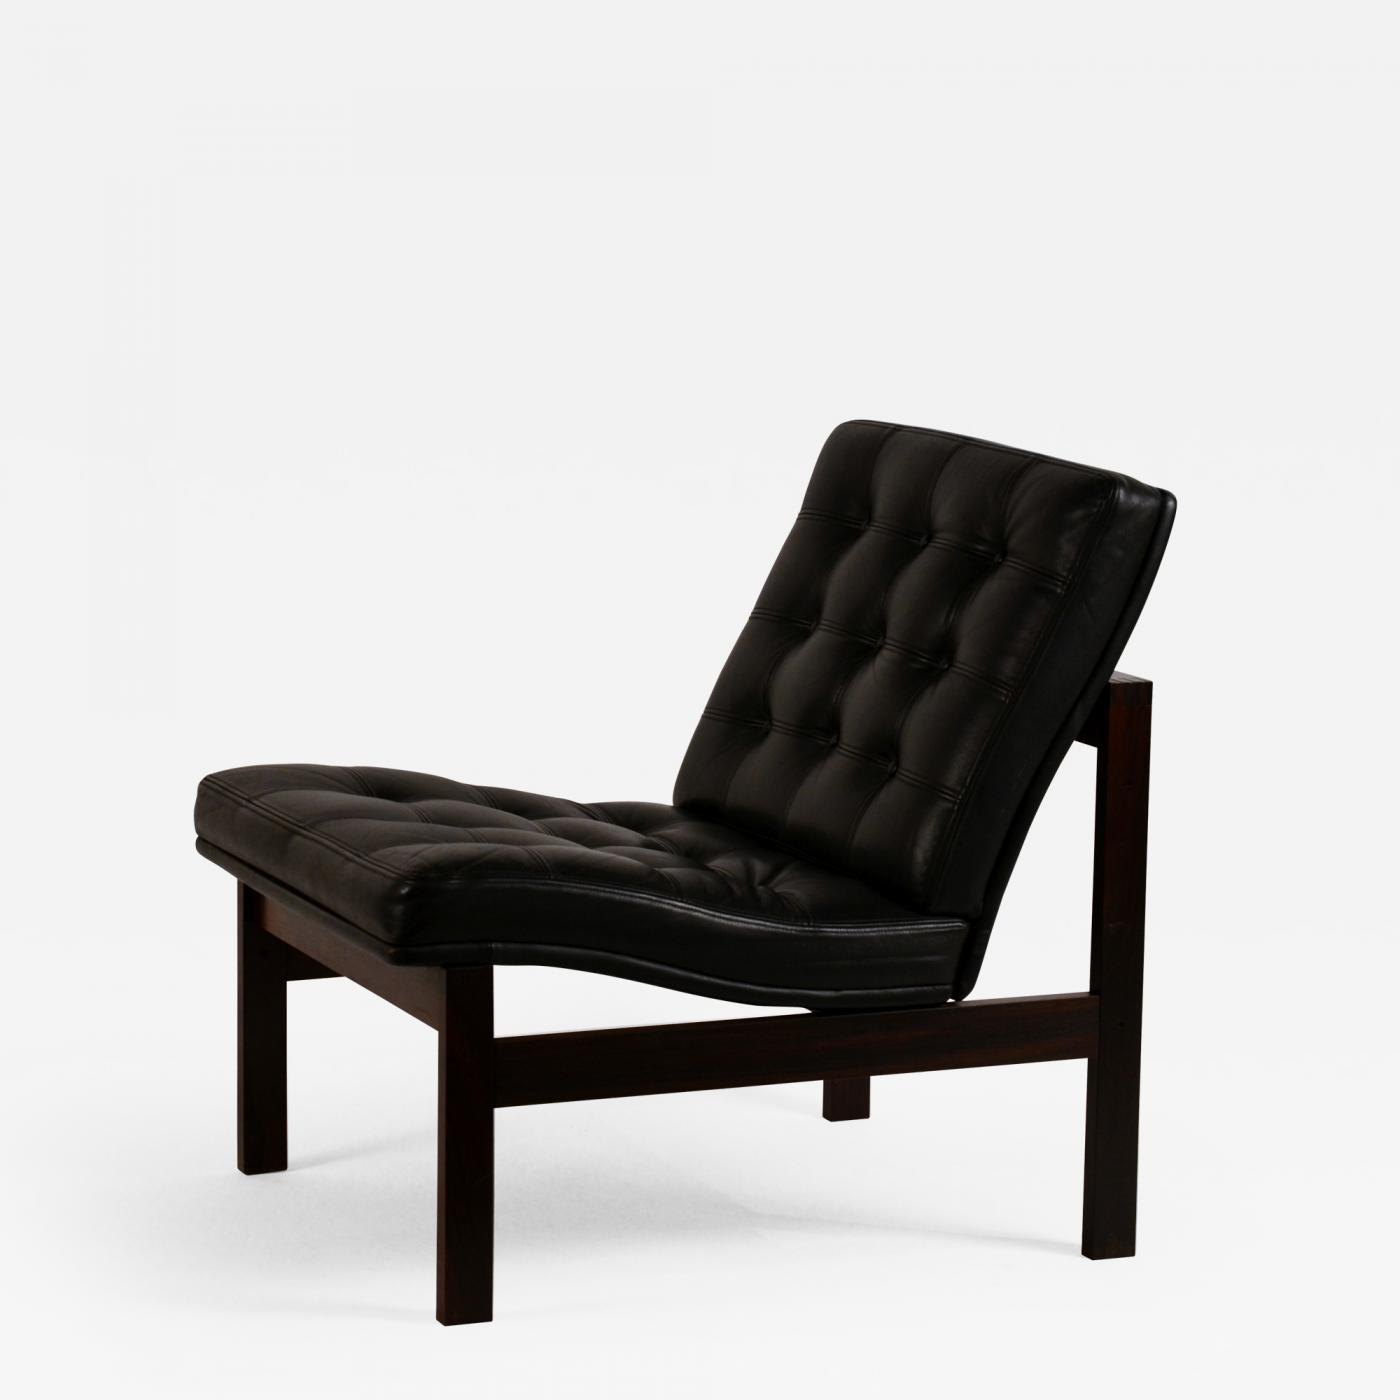 Fabulous Ole Gjerlov Knudsen Impeccable Black Leather Slipper Chair By Ole Gjerlov Knudsen For France Son Ibusinesslaw Wood Chair Design Ideas Ibusinesslaworg